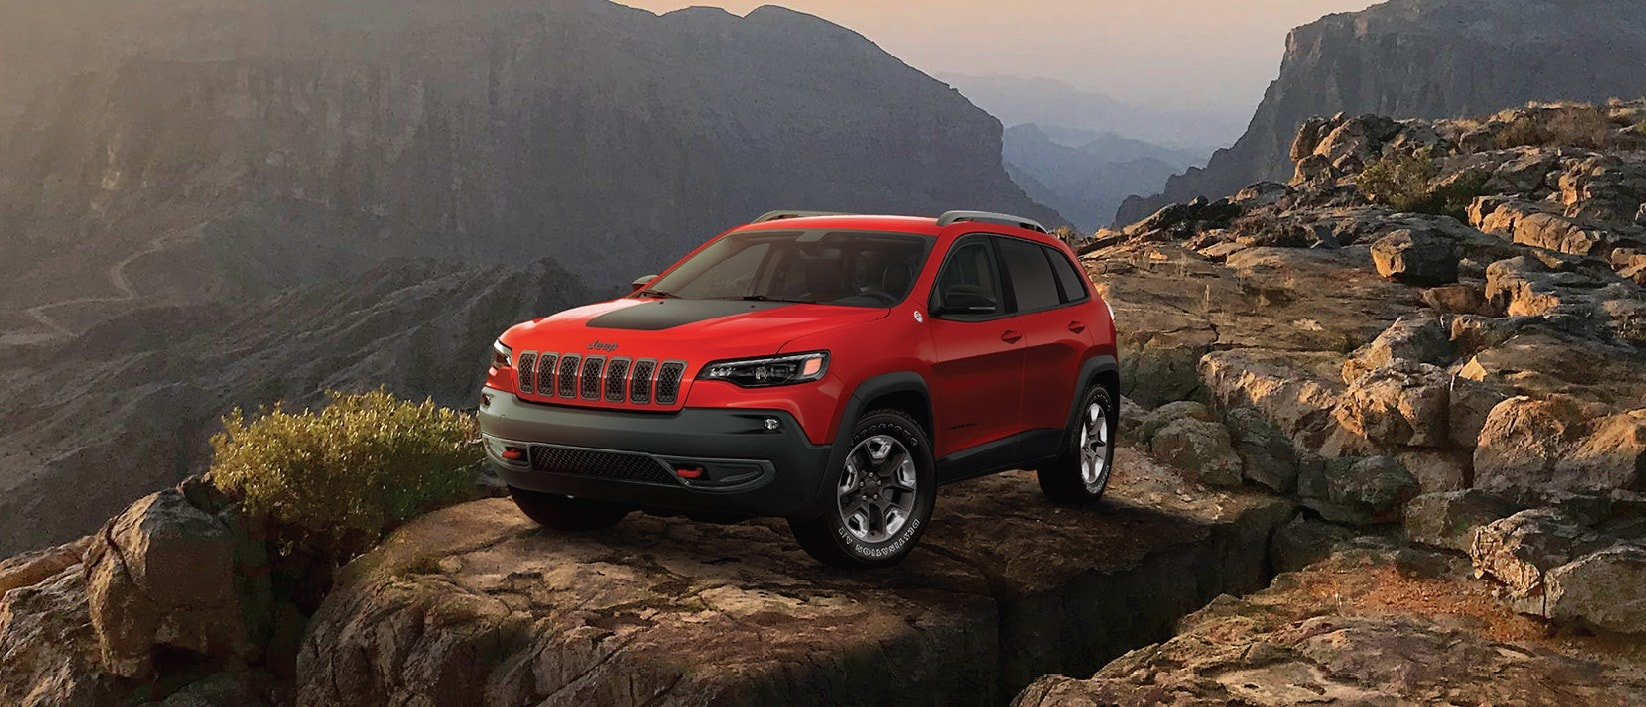 2019 Jeep Cherokee Off Road Capabilities Ginn Cdjr